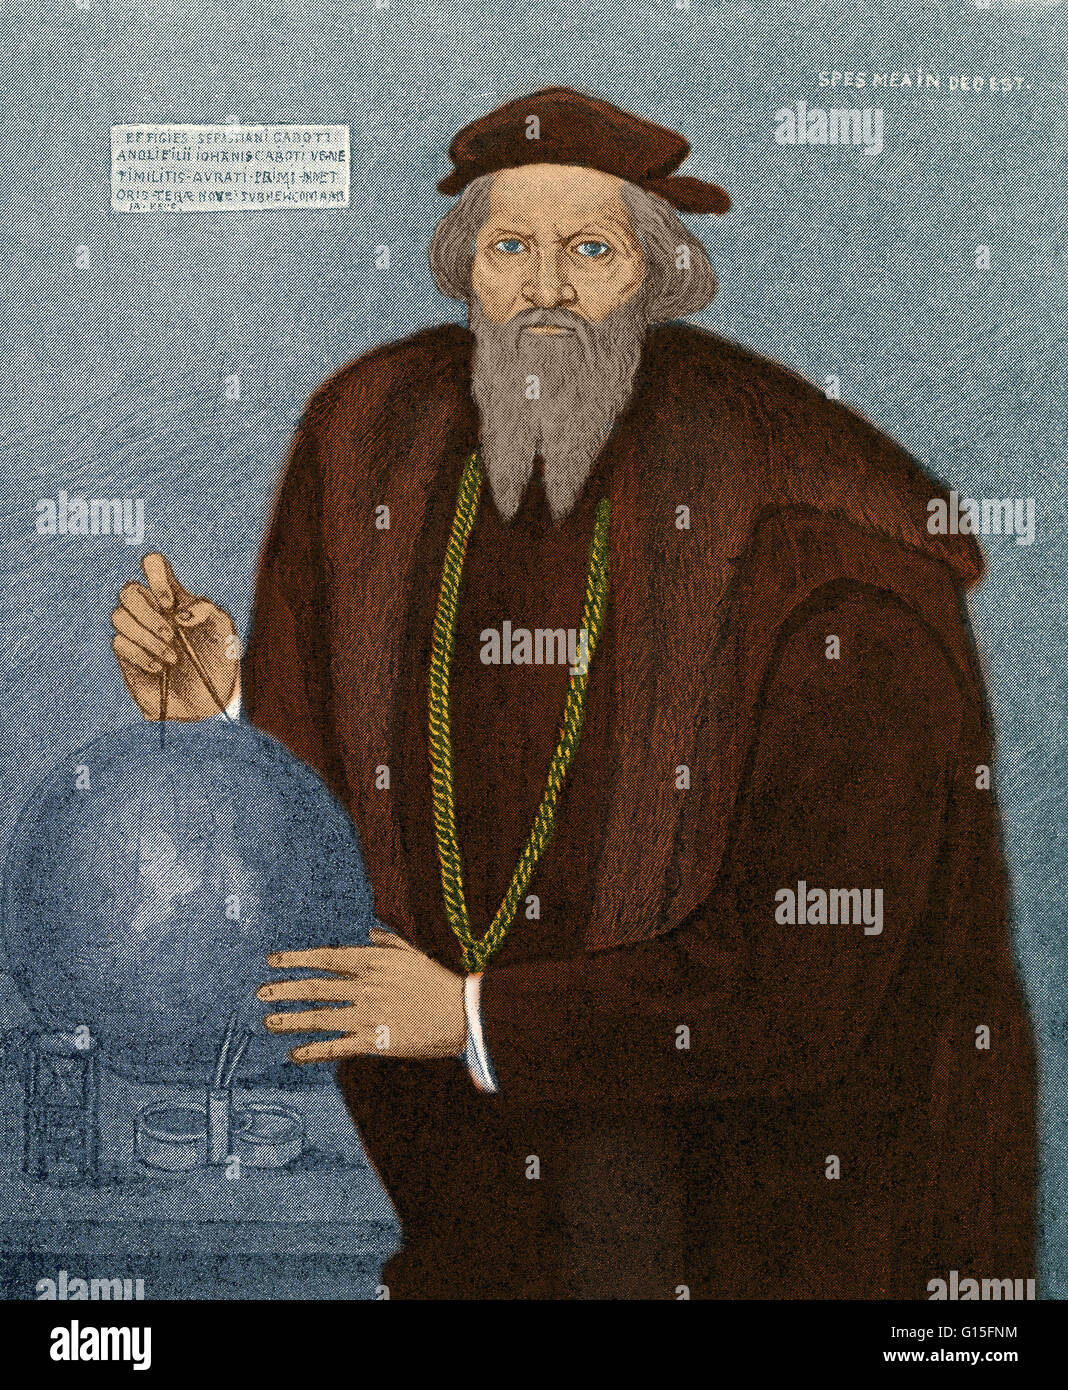 John cabot in color images galleries for Cabot